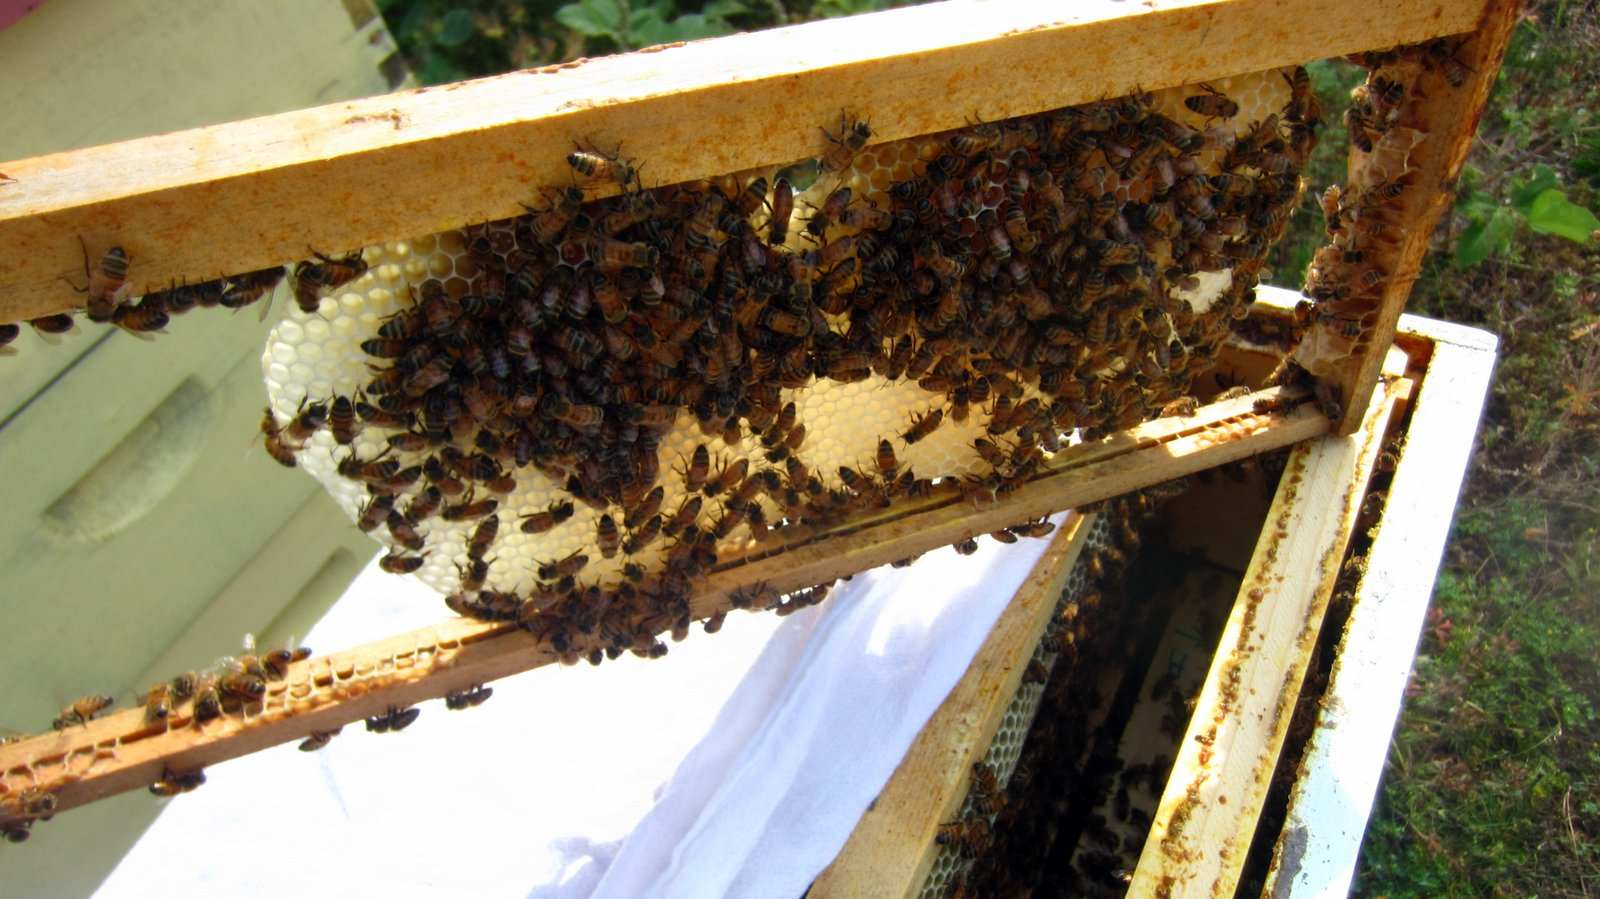 Linda's Bees: Inviting Bees into a New Super of